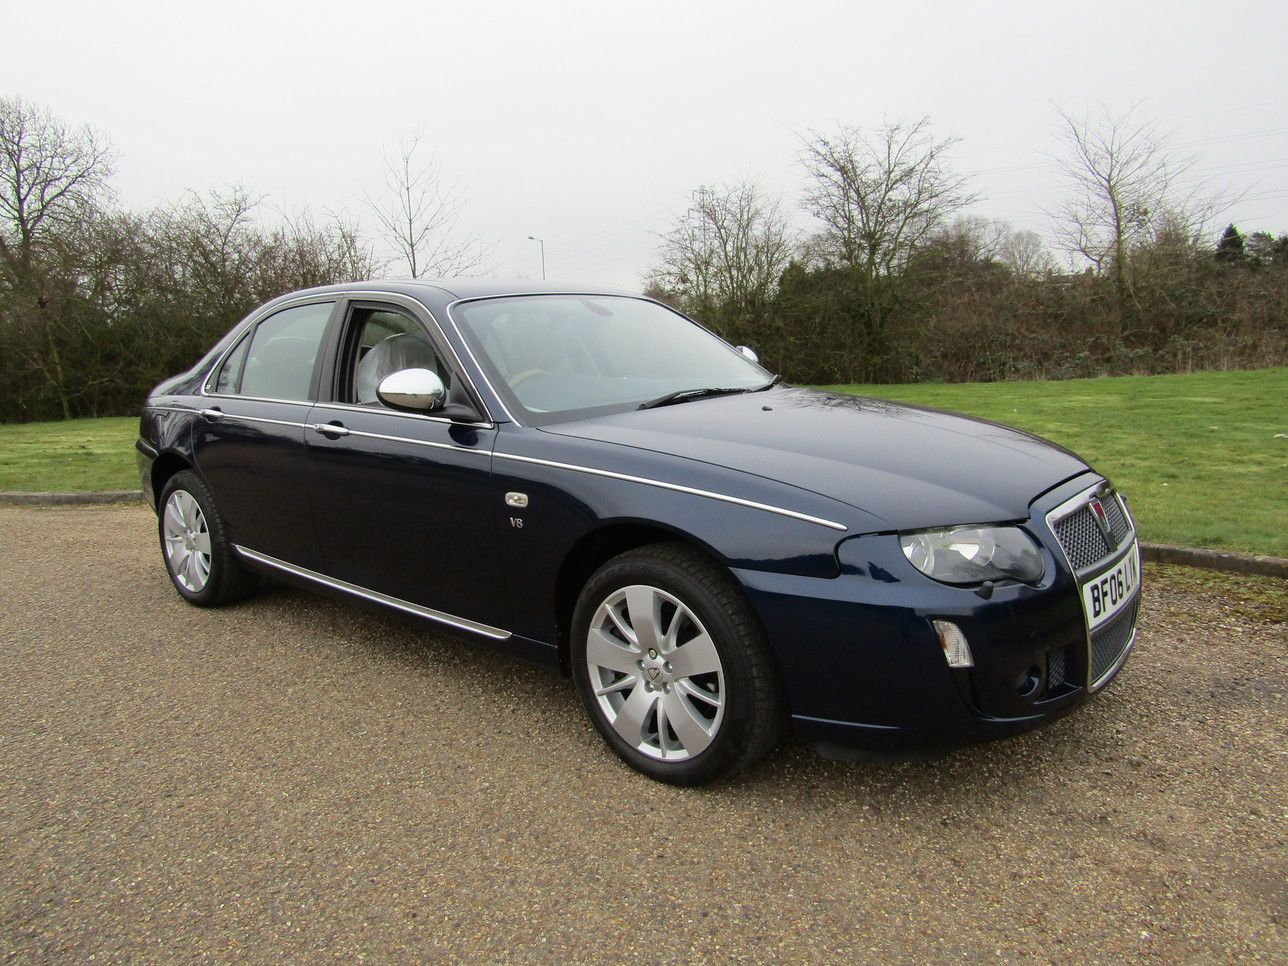 2006 Rover 75 V8 | Rover 75/MG ZT | Pinterest | Cars, Sedans and Vehicle